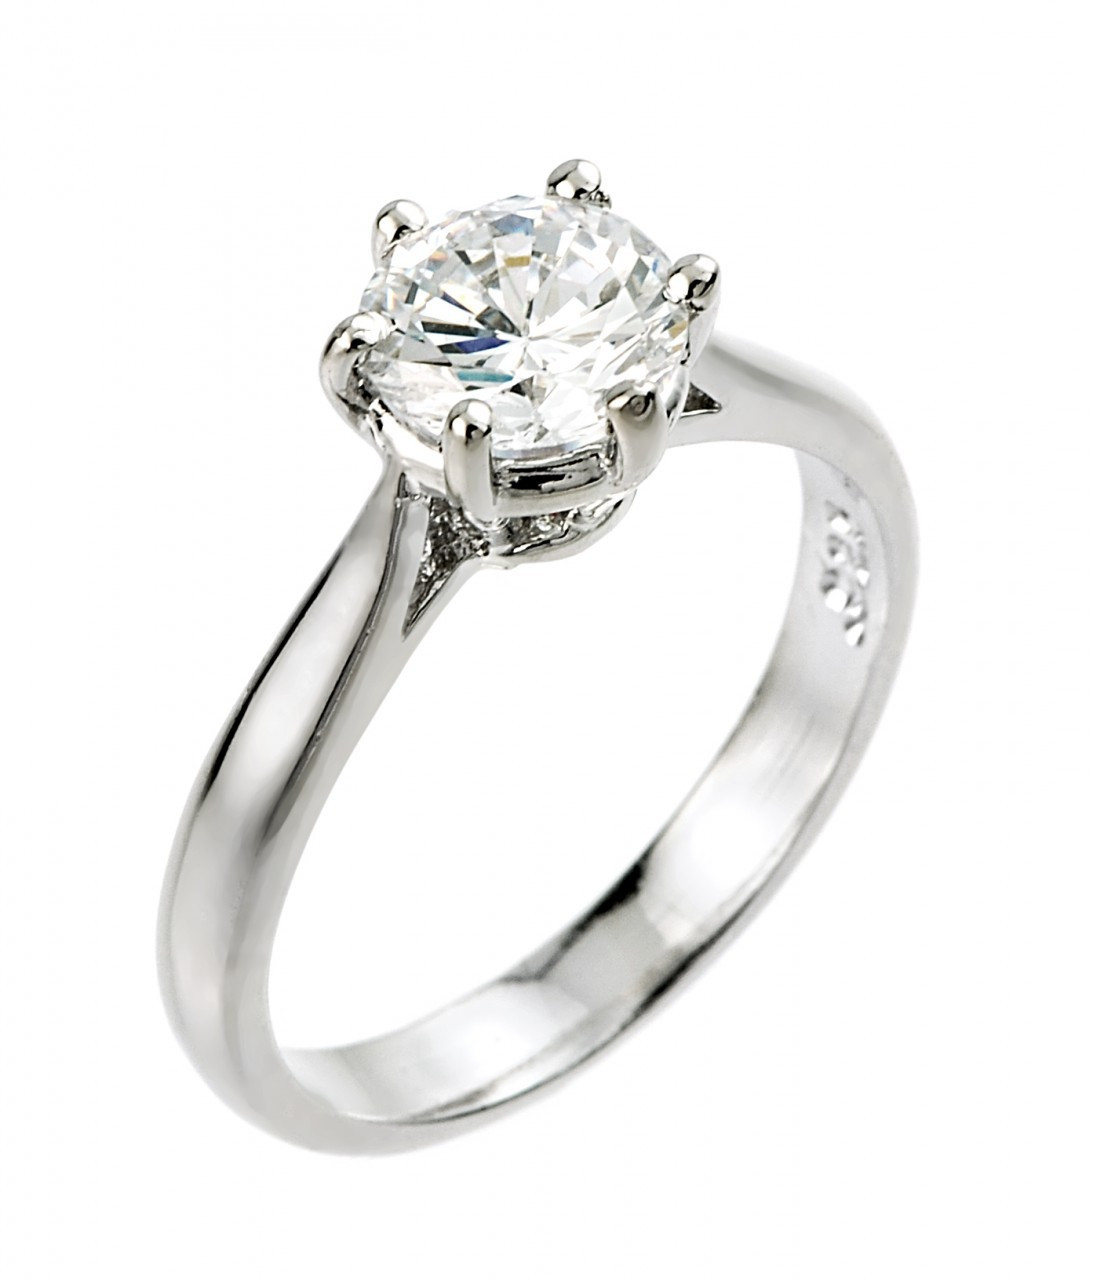 White Gold 1 ct CZ (6mm) Solitaire Engagement Ring